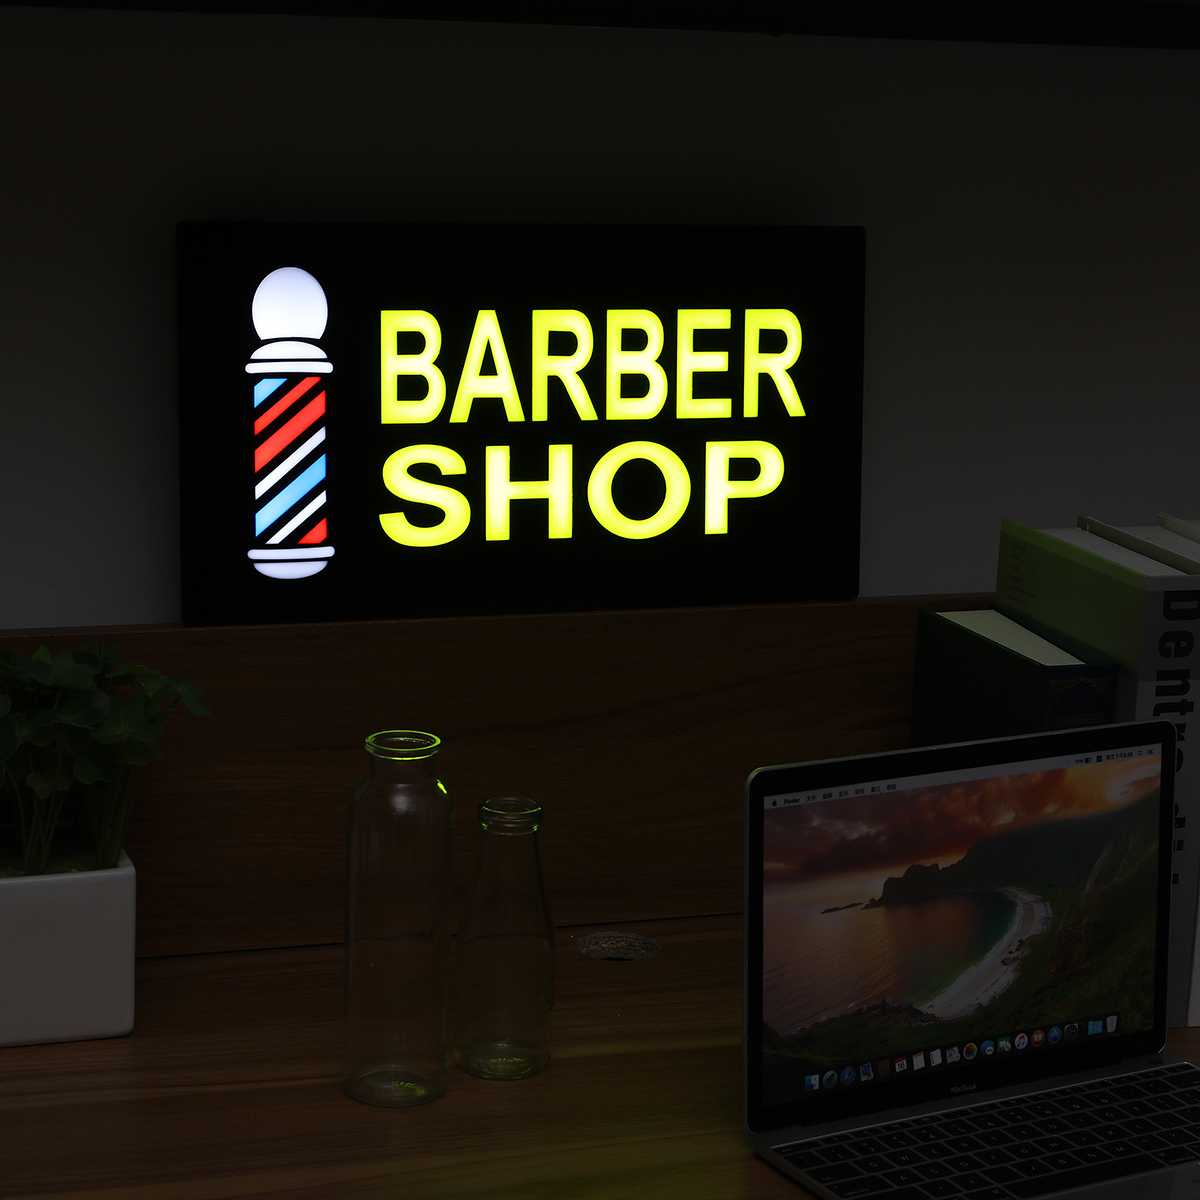 Barber Shop Hanging LED Sign Lights Board Pub Club Window Display Lamp Decoration Commercial Advertising Lighting 43*23*3.5cm